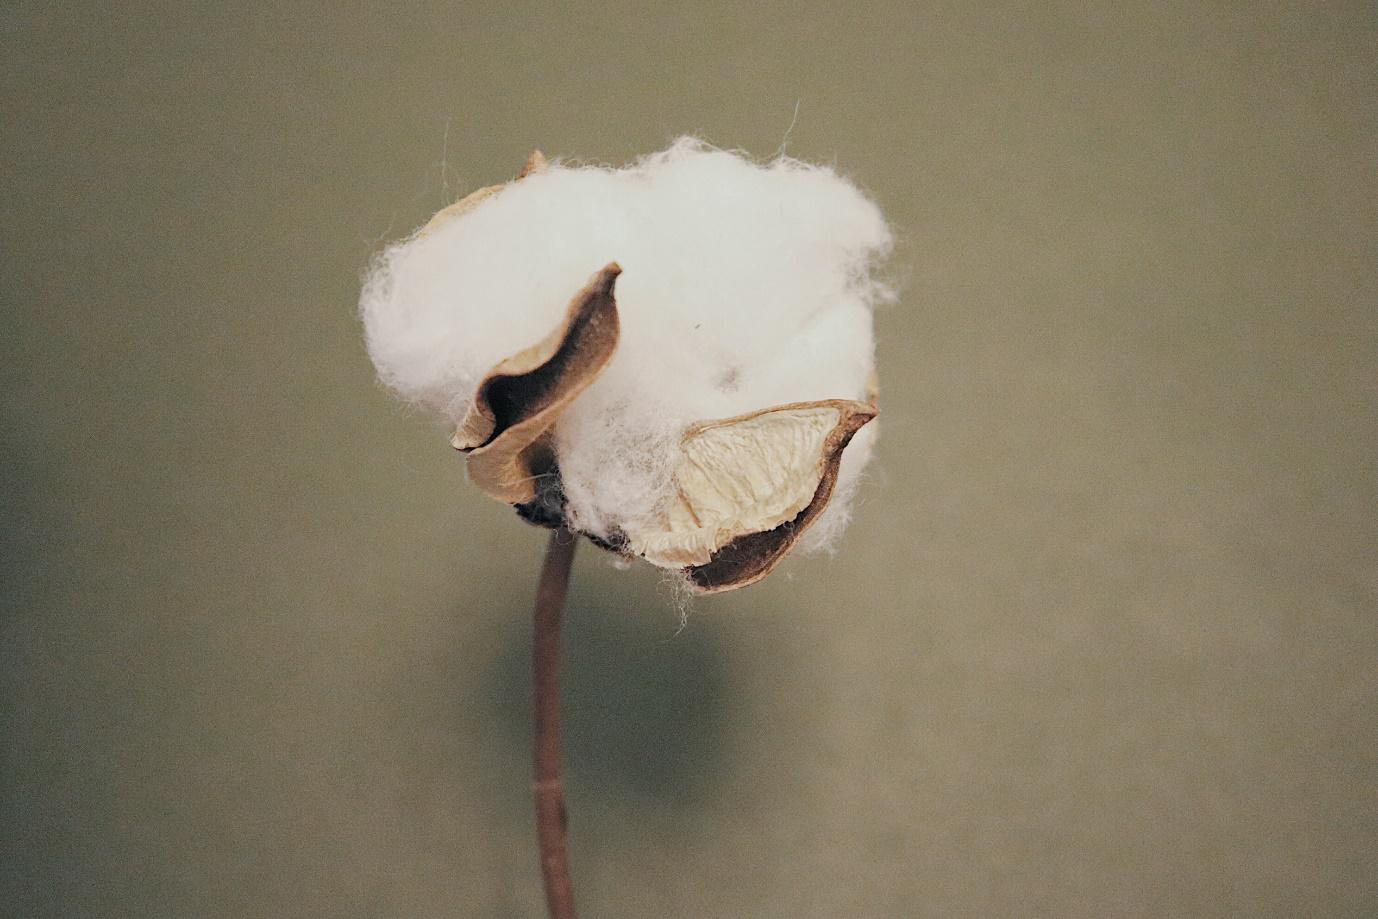 Five reasons to buy clothing made from organic cotton